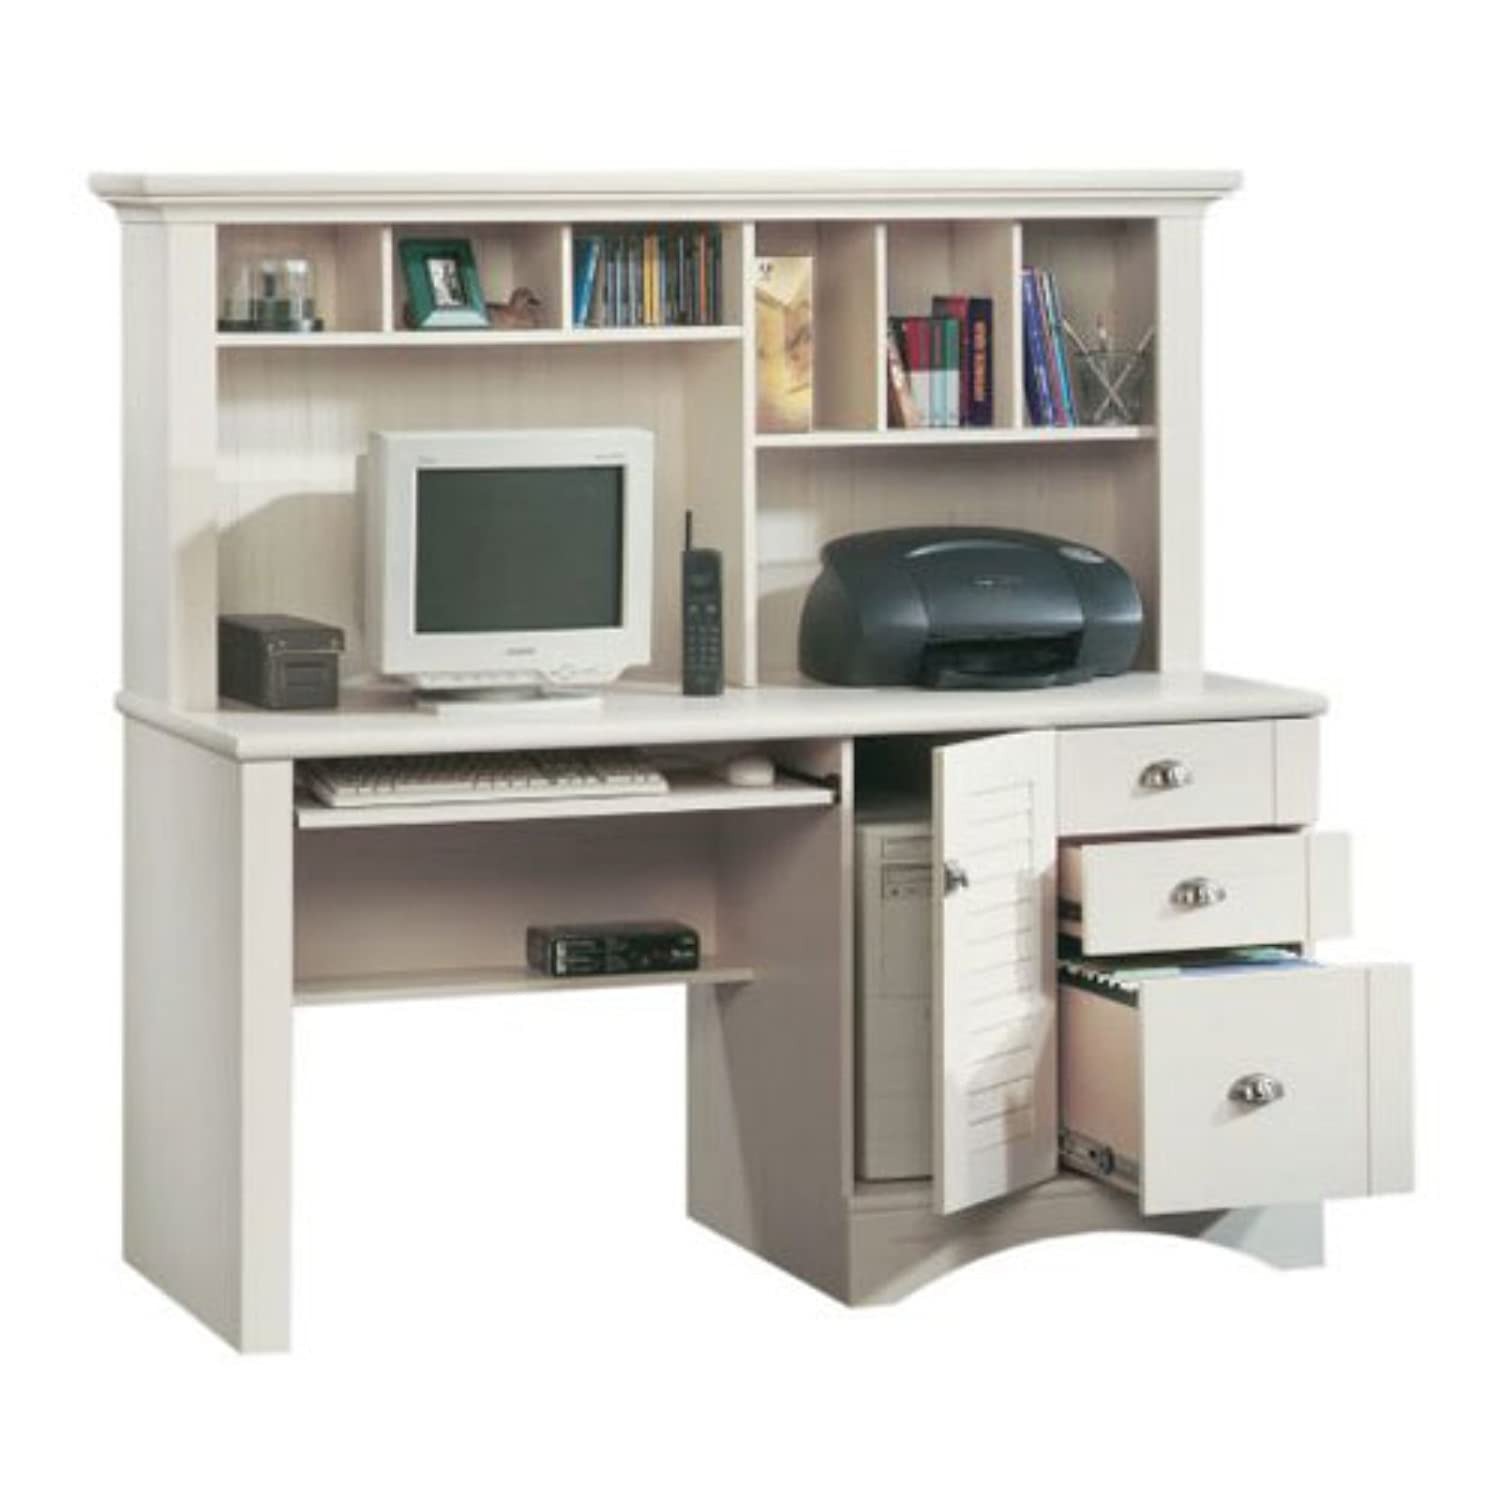 Amazon.com: Sauder Harbor View Computer Desk with Hutch, Antiqued White:  Kitchen & Dining - Amazon.com: Sauder Harbor View Computer Desk With Hutch, Antiqued